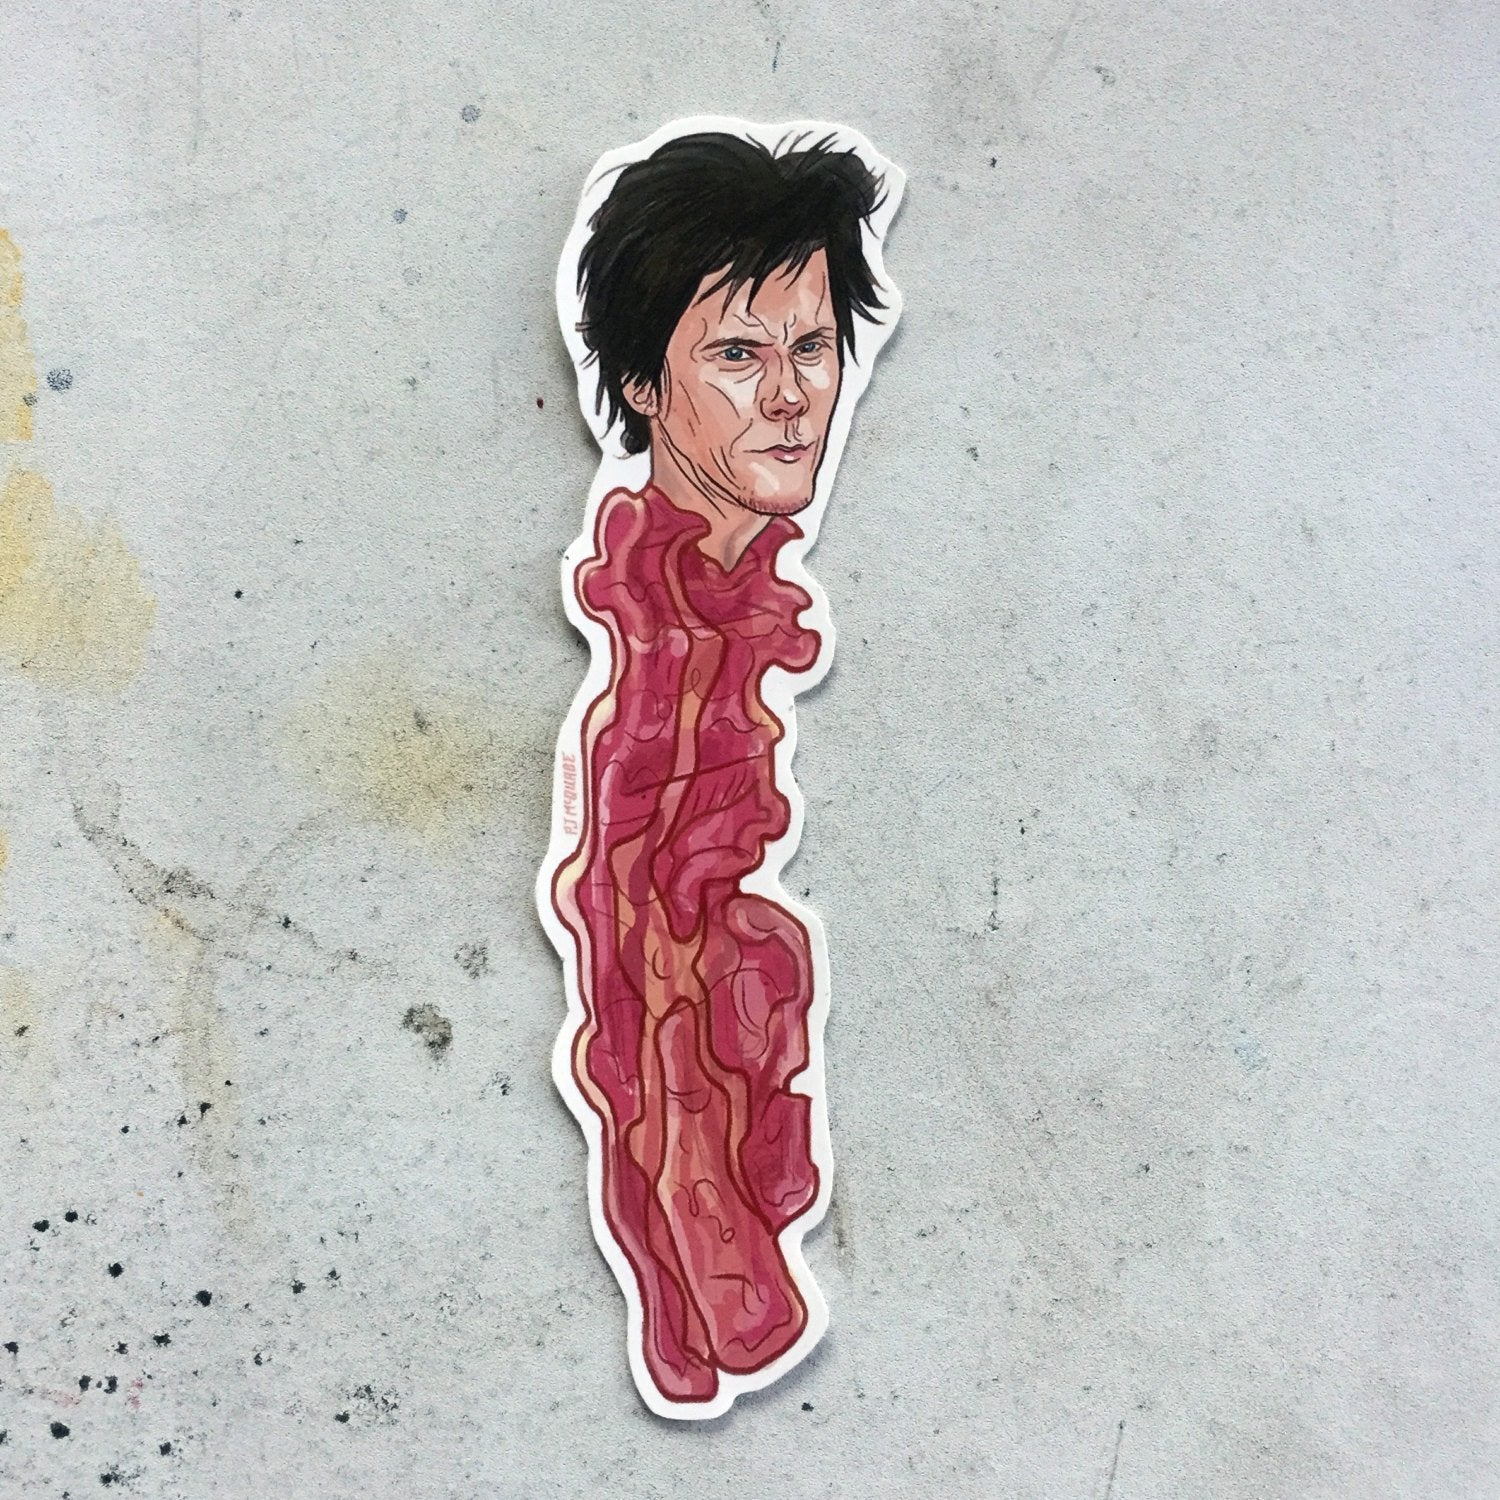 KEVIN Bacon BACON Waterproof STICKER!